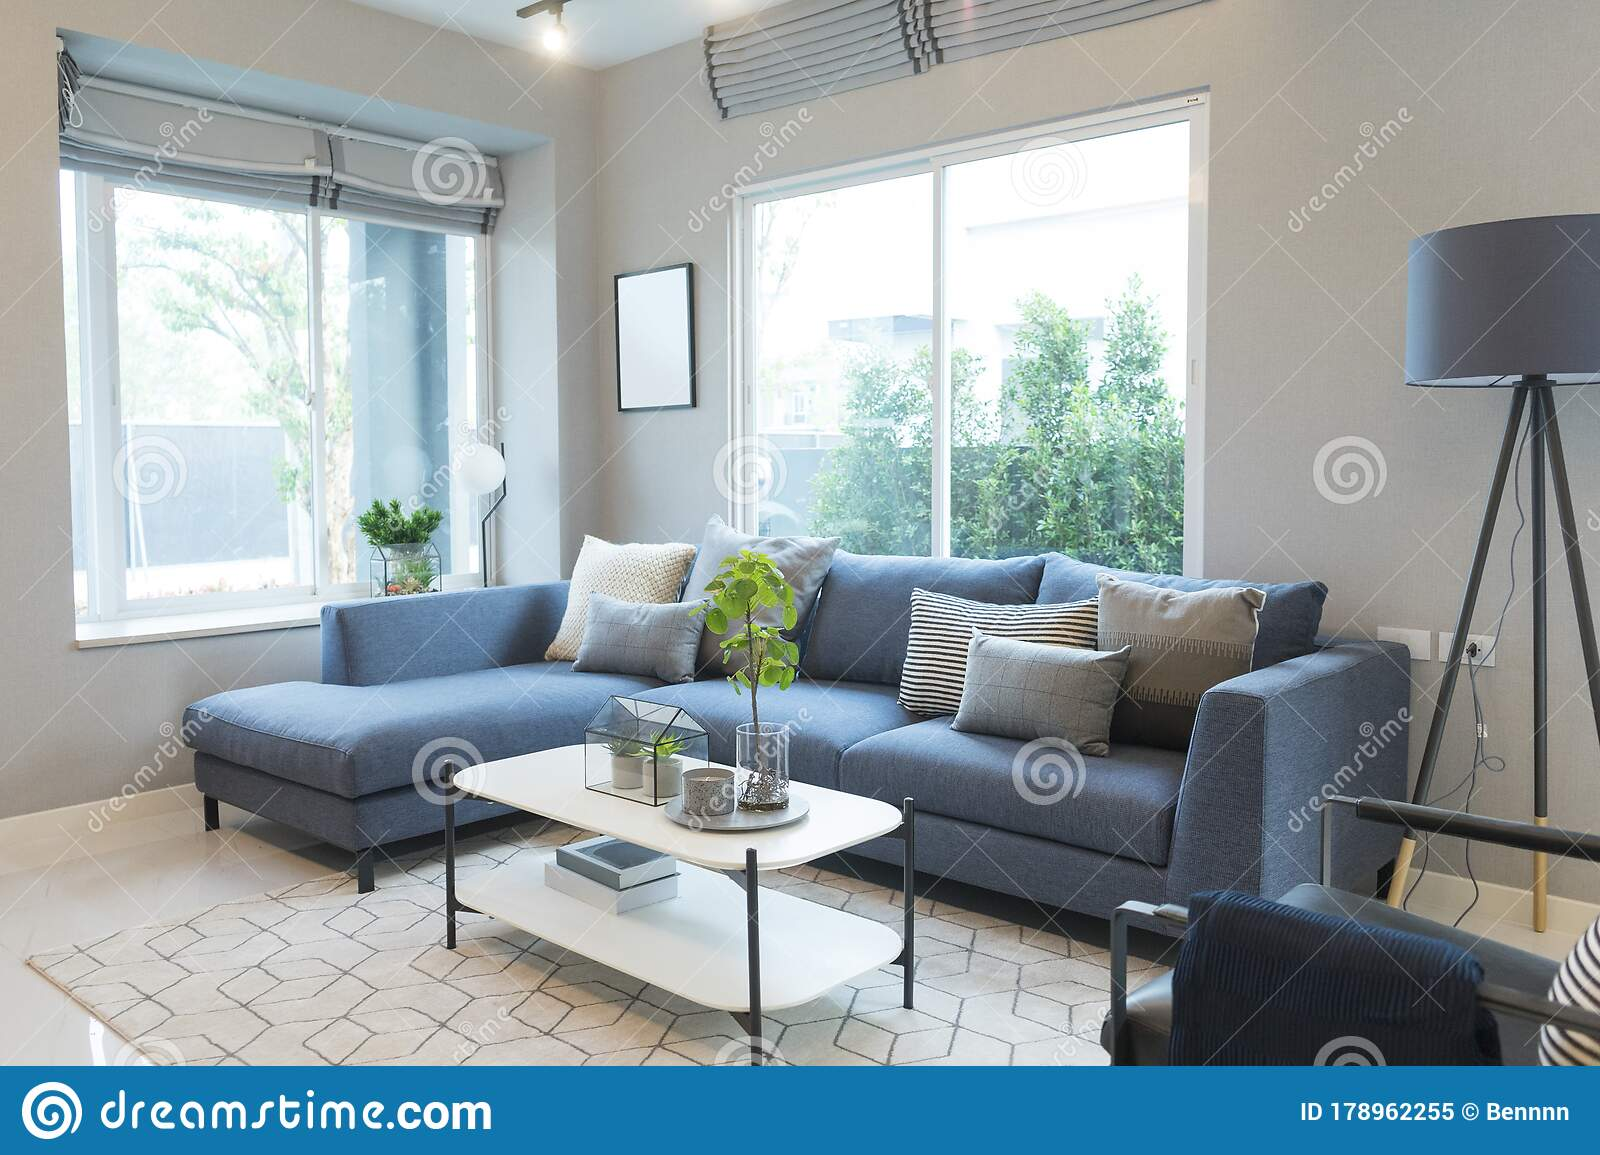 Modern Living Room Blue Sofa And Grey Pillow With Coffee Table And Floor Lamp Stock Image Image Of Loft Interior 178962255